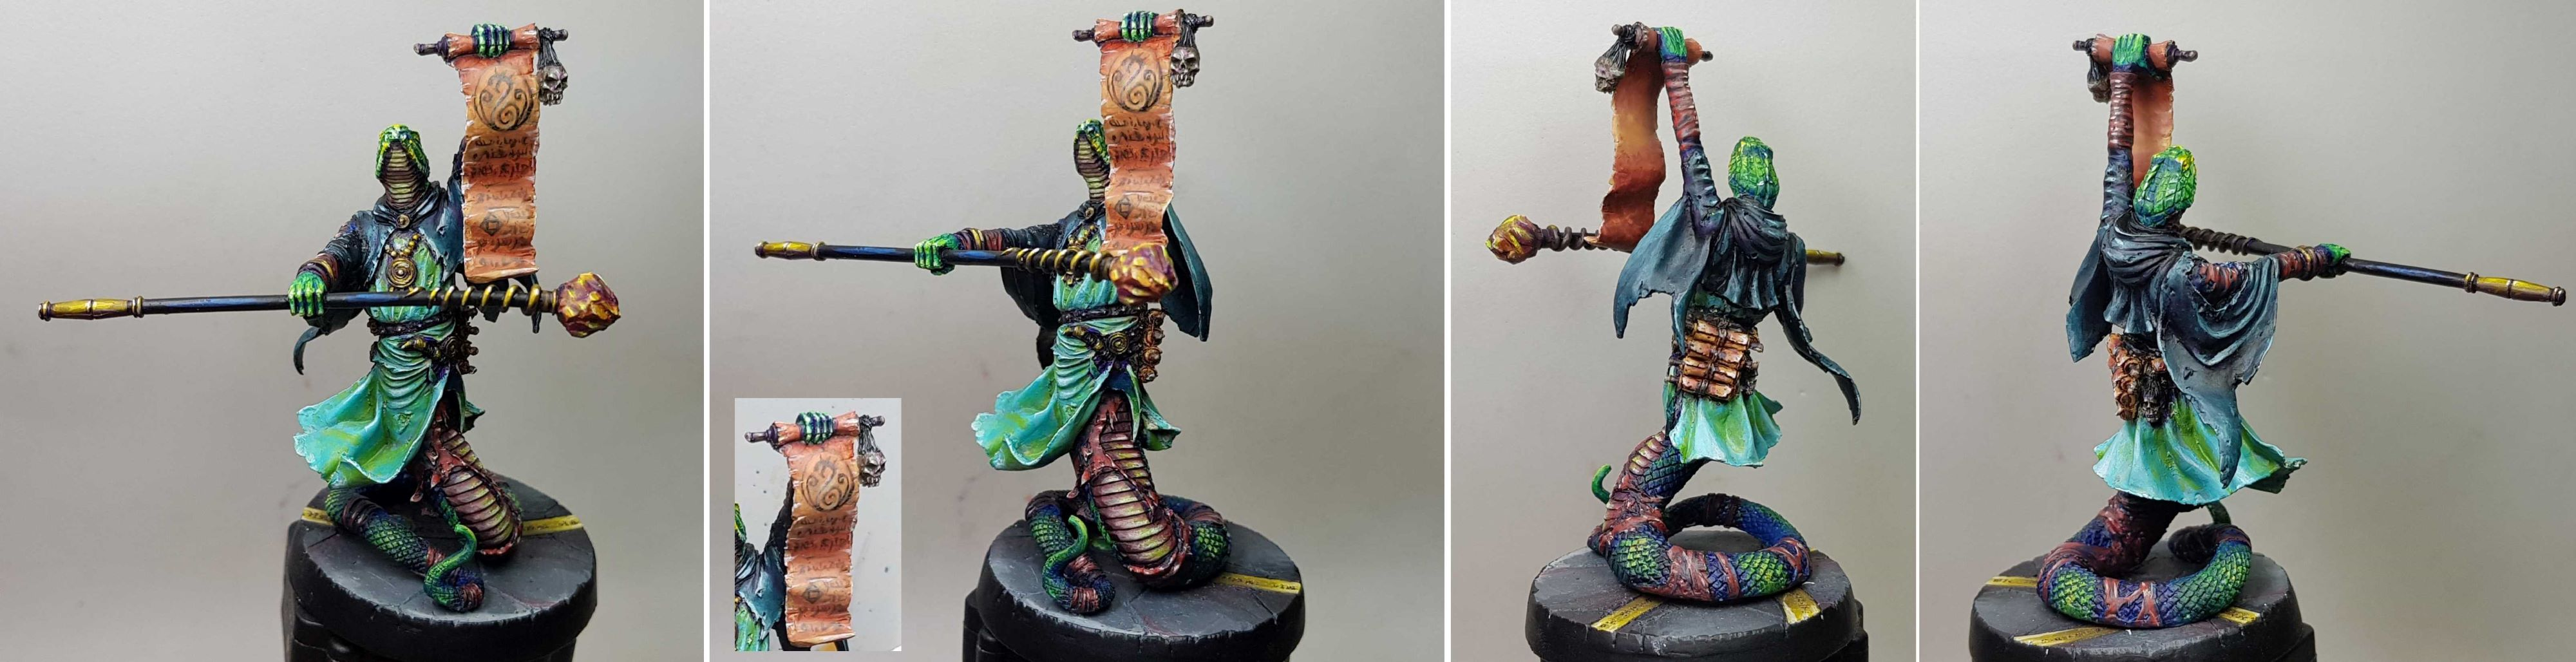 Mierce Miniatures - Kthones - Svrill, Wielder of Kthone